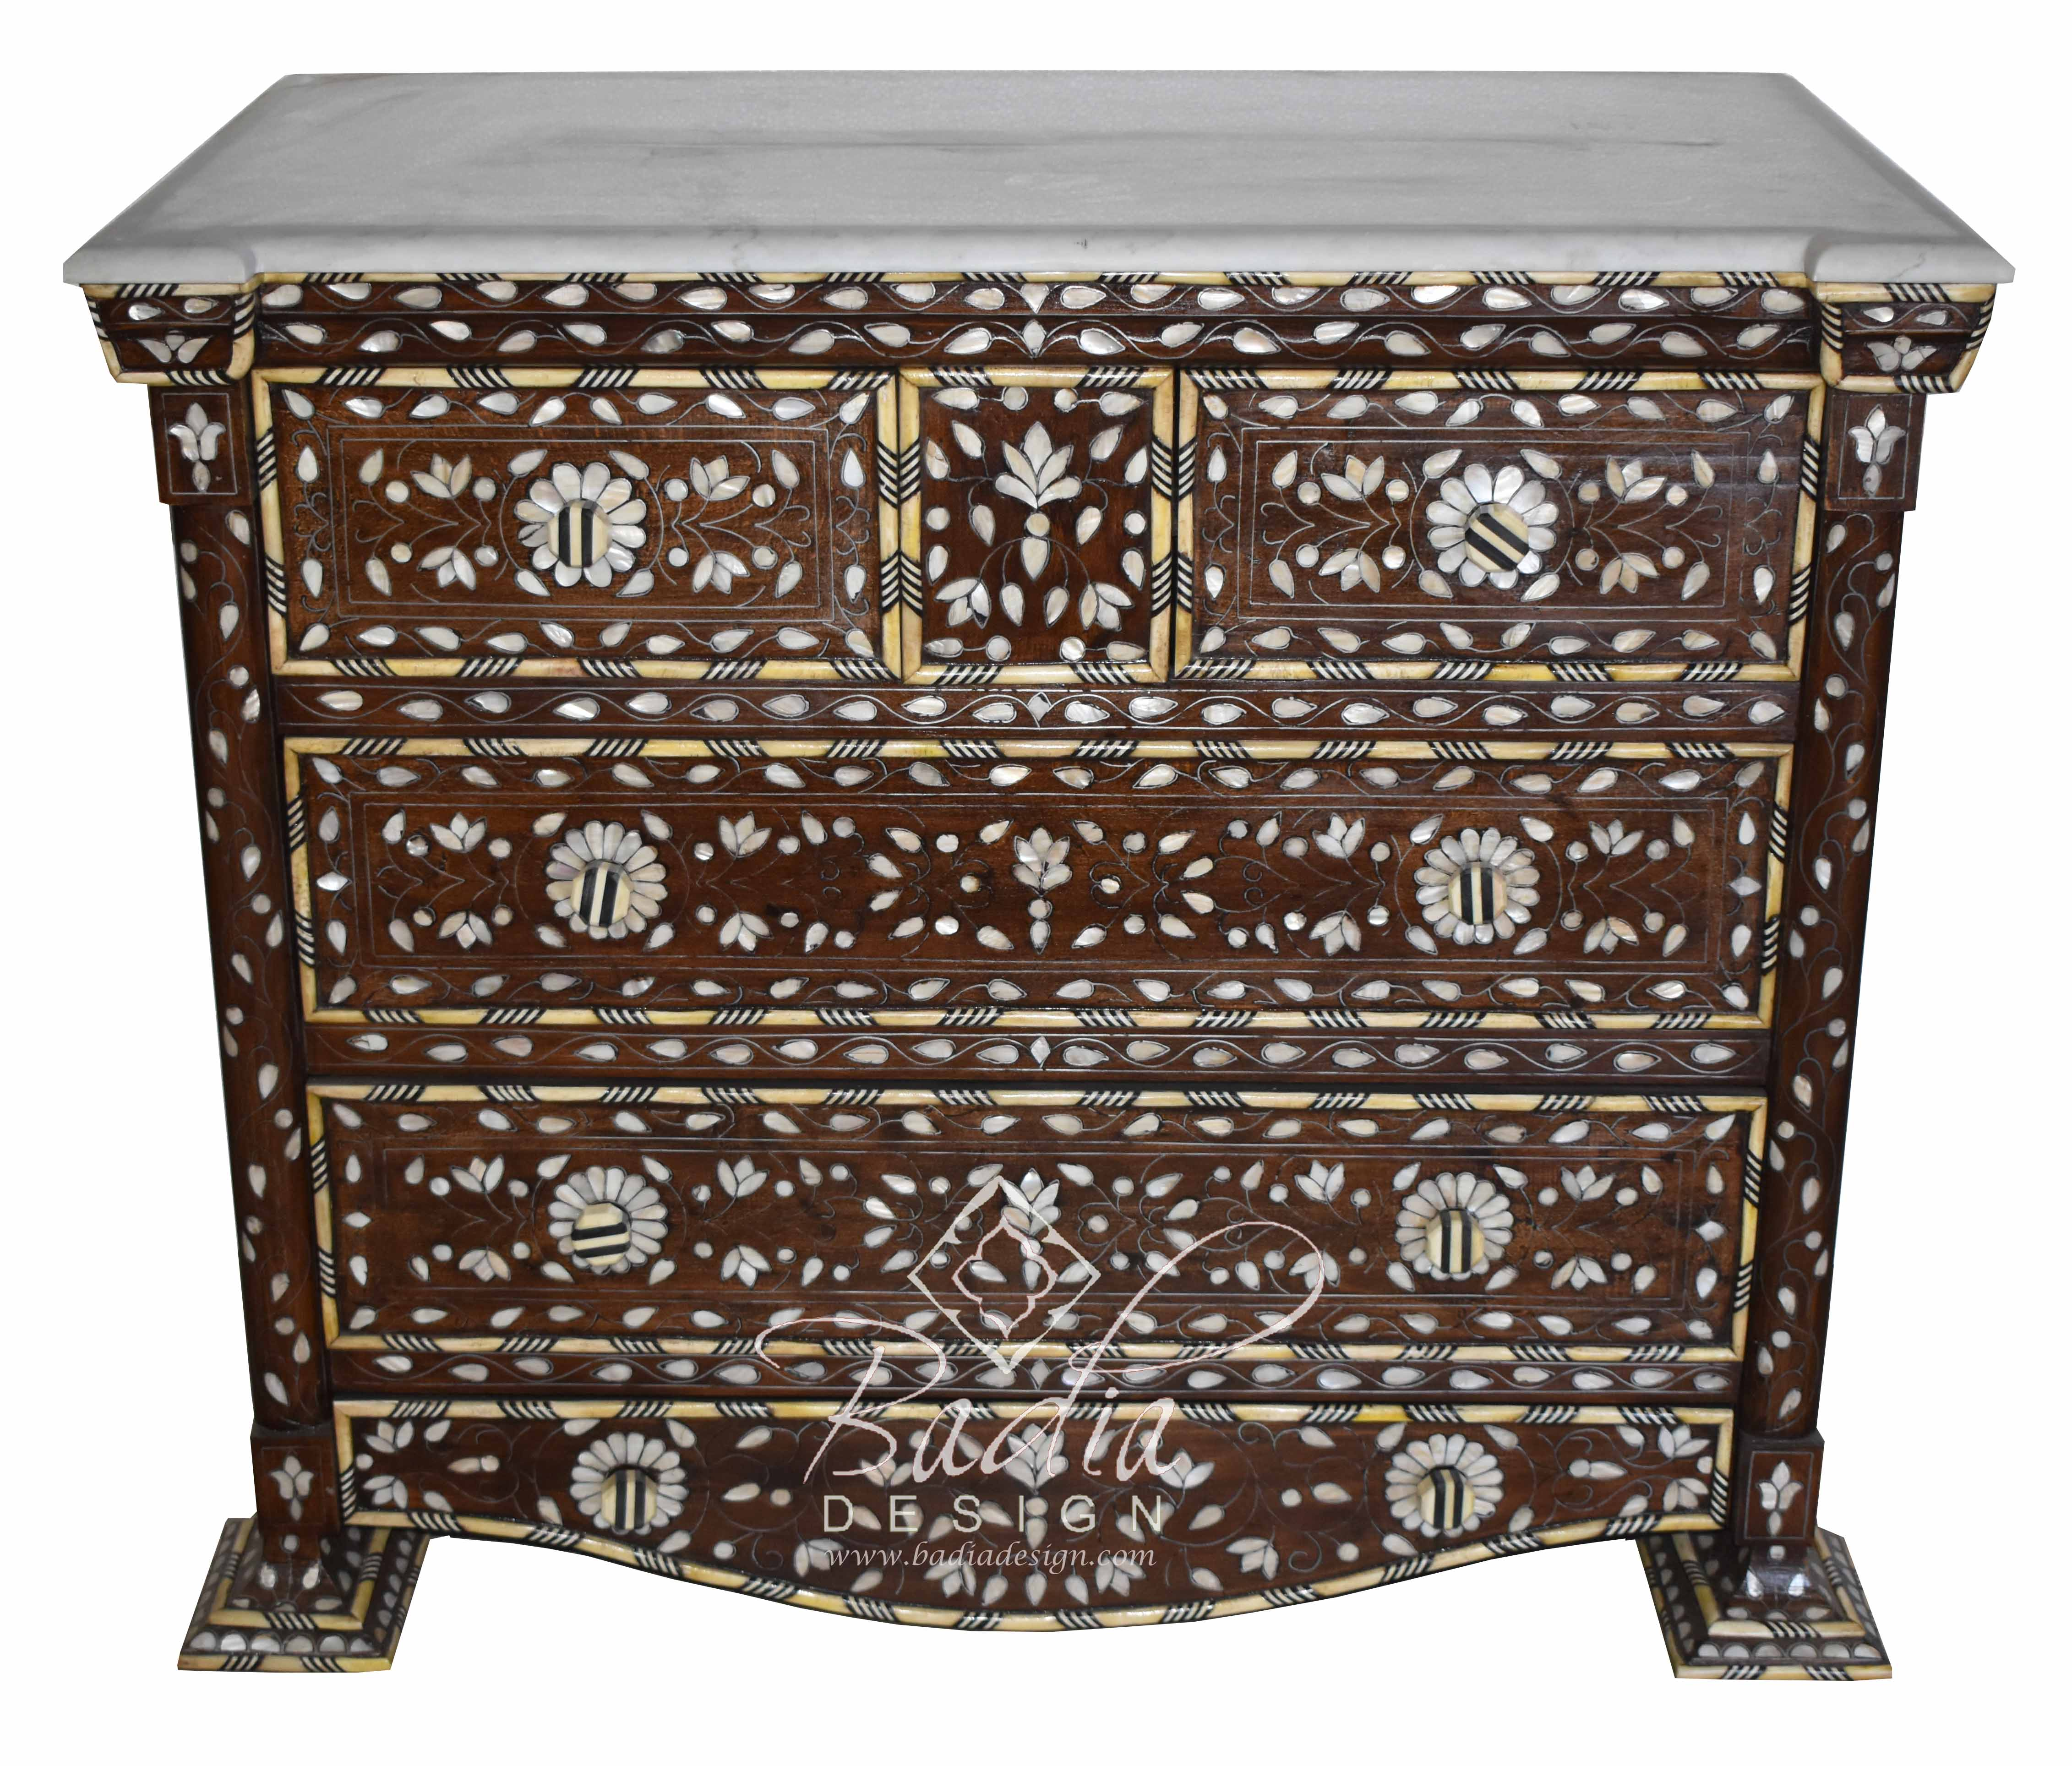 moroccan-bone-inlay-dresser-with-white-marble-top-mop-dr062-1.jpg